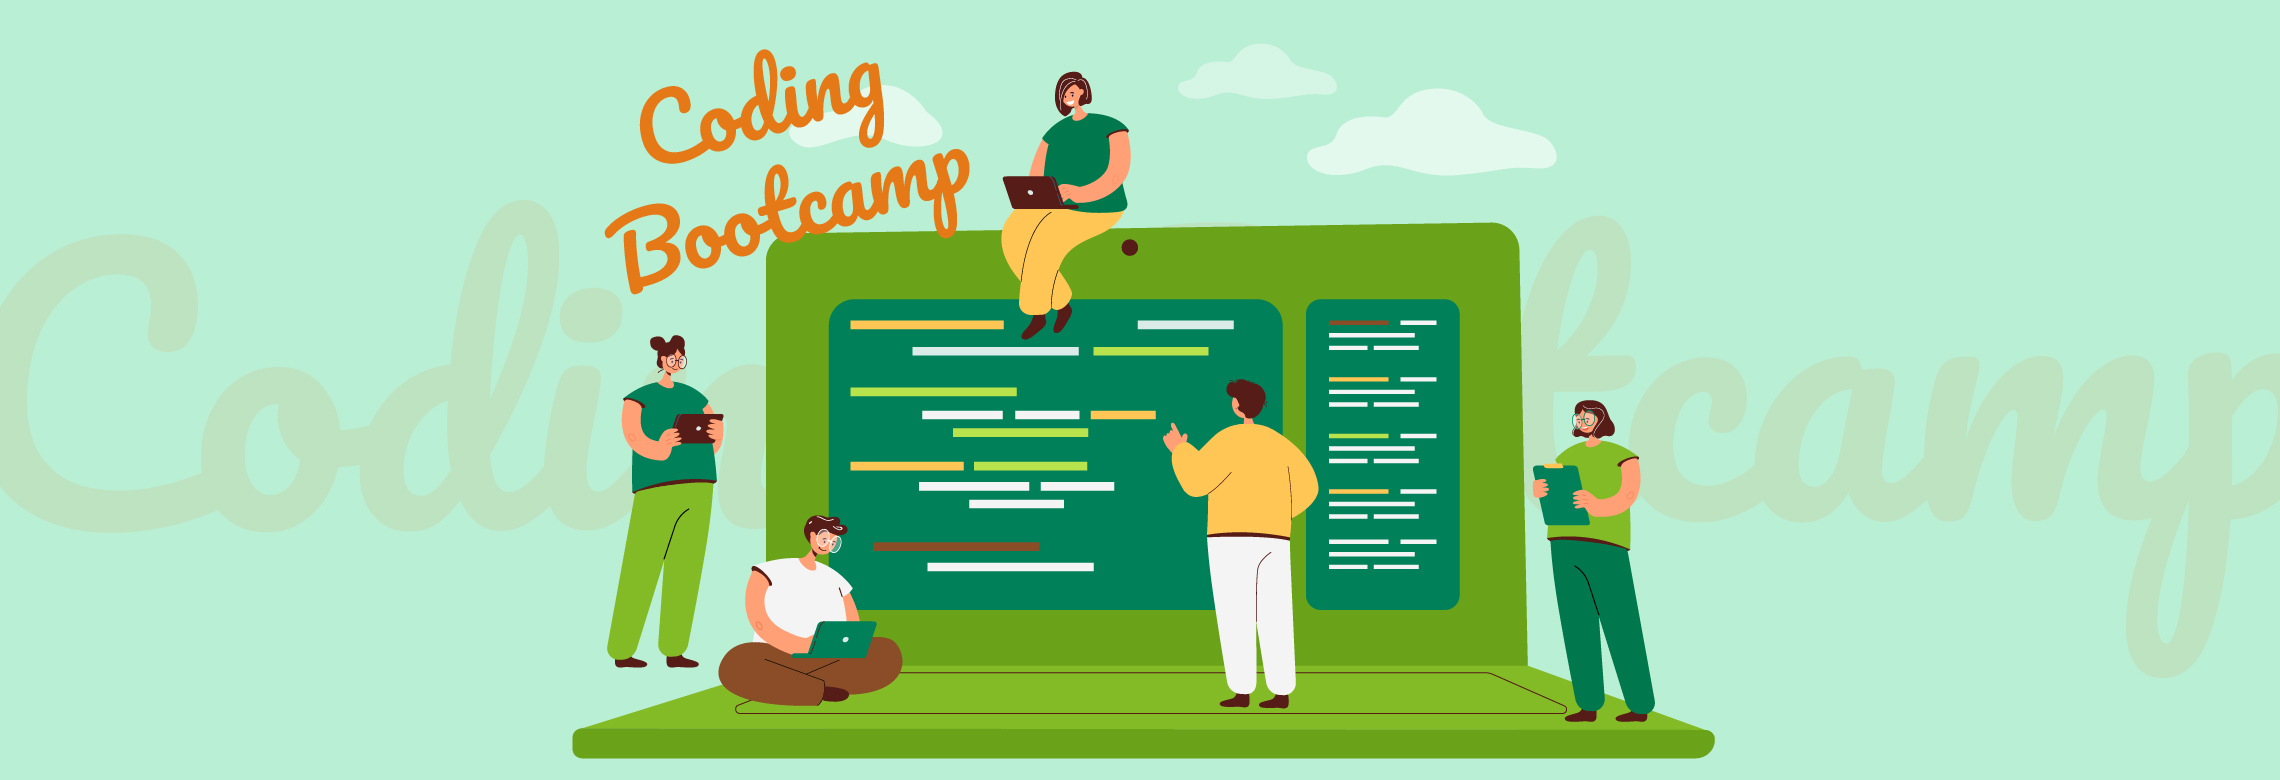 Why are Coding Bootcamps so Popular?